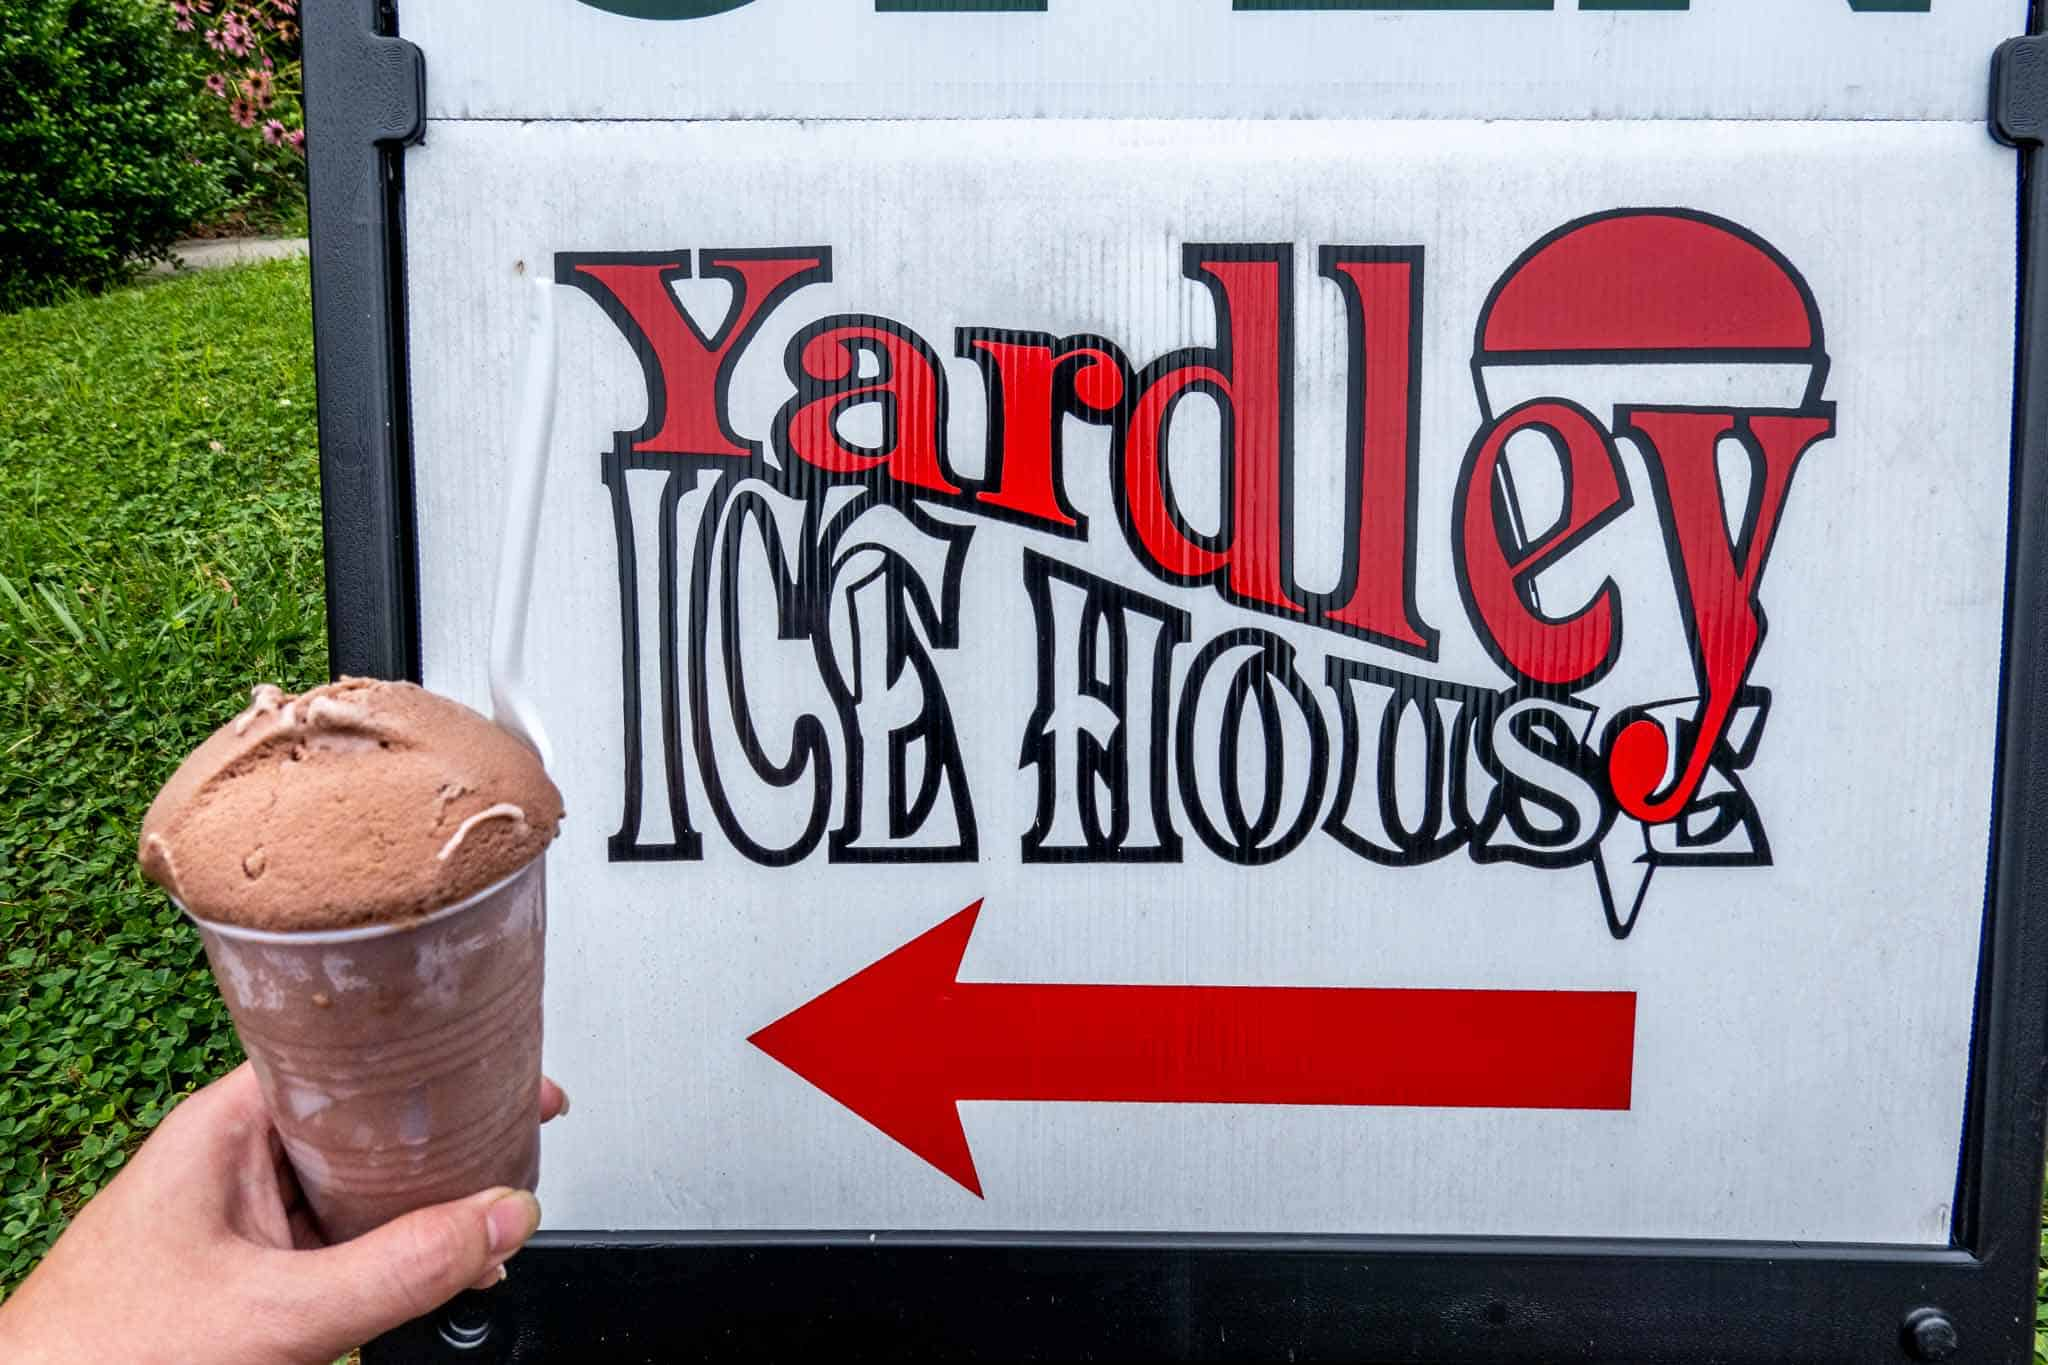 Hand holding a cup of water ice beside a sign for Yardley Ice House